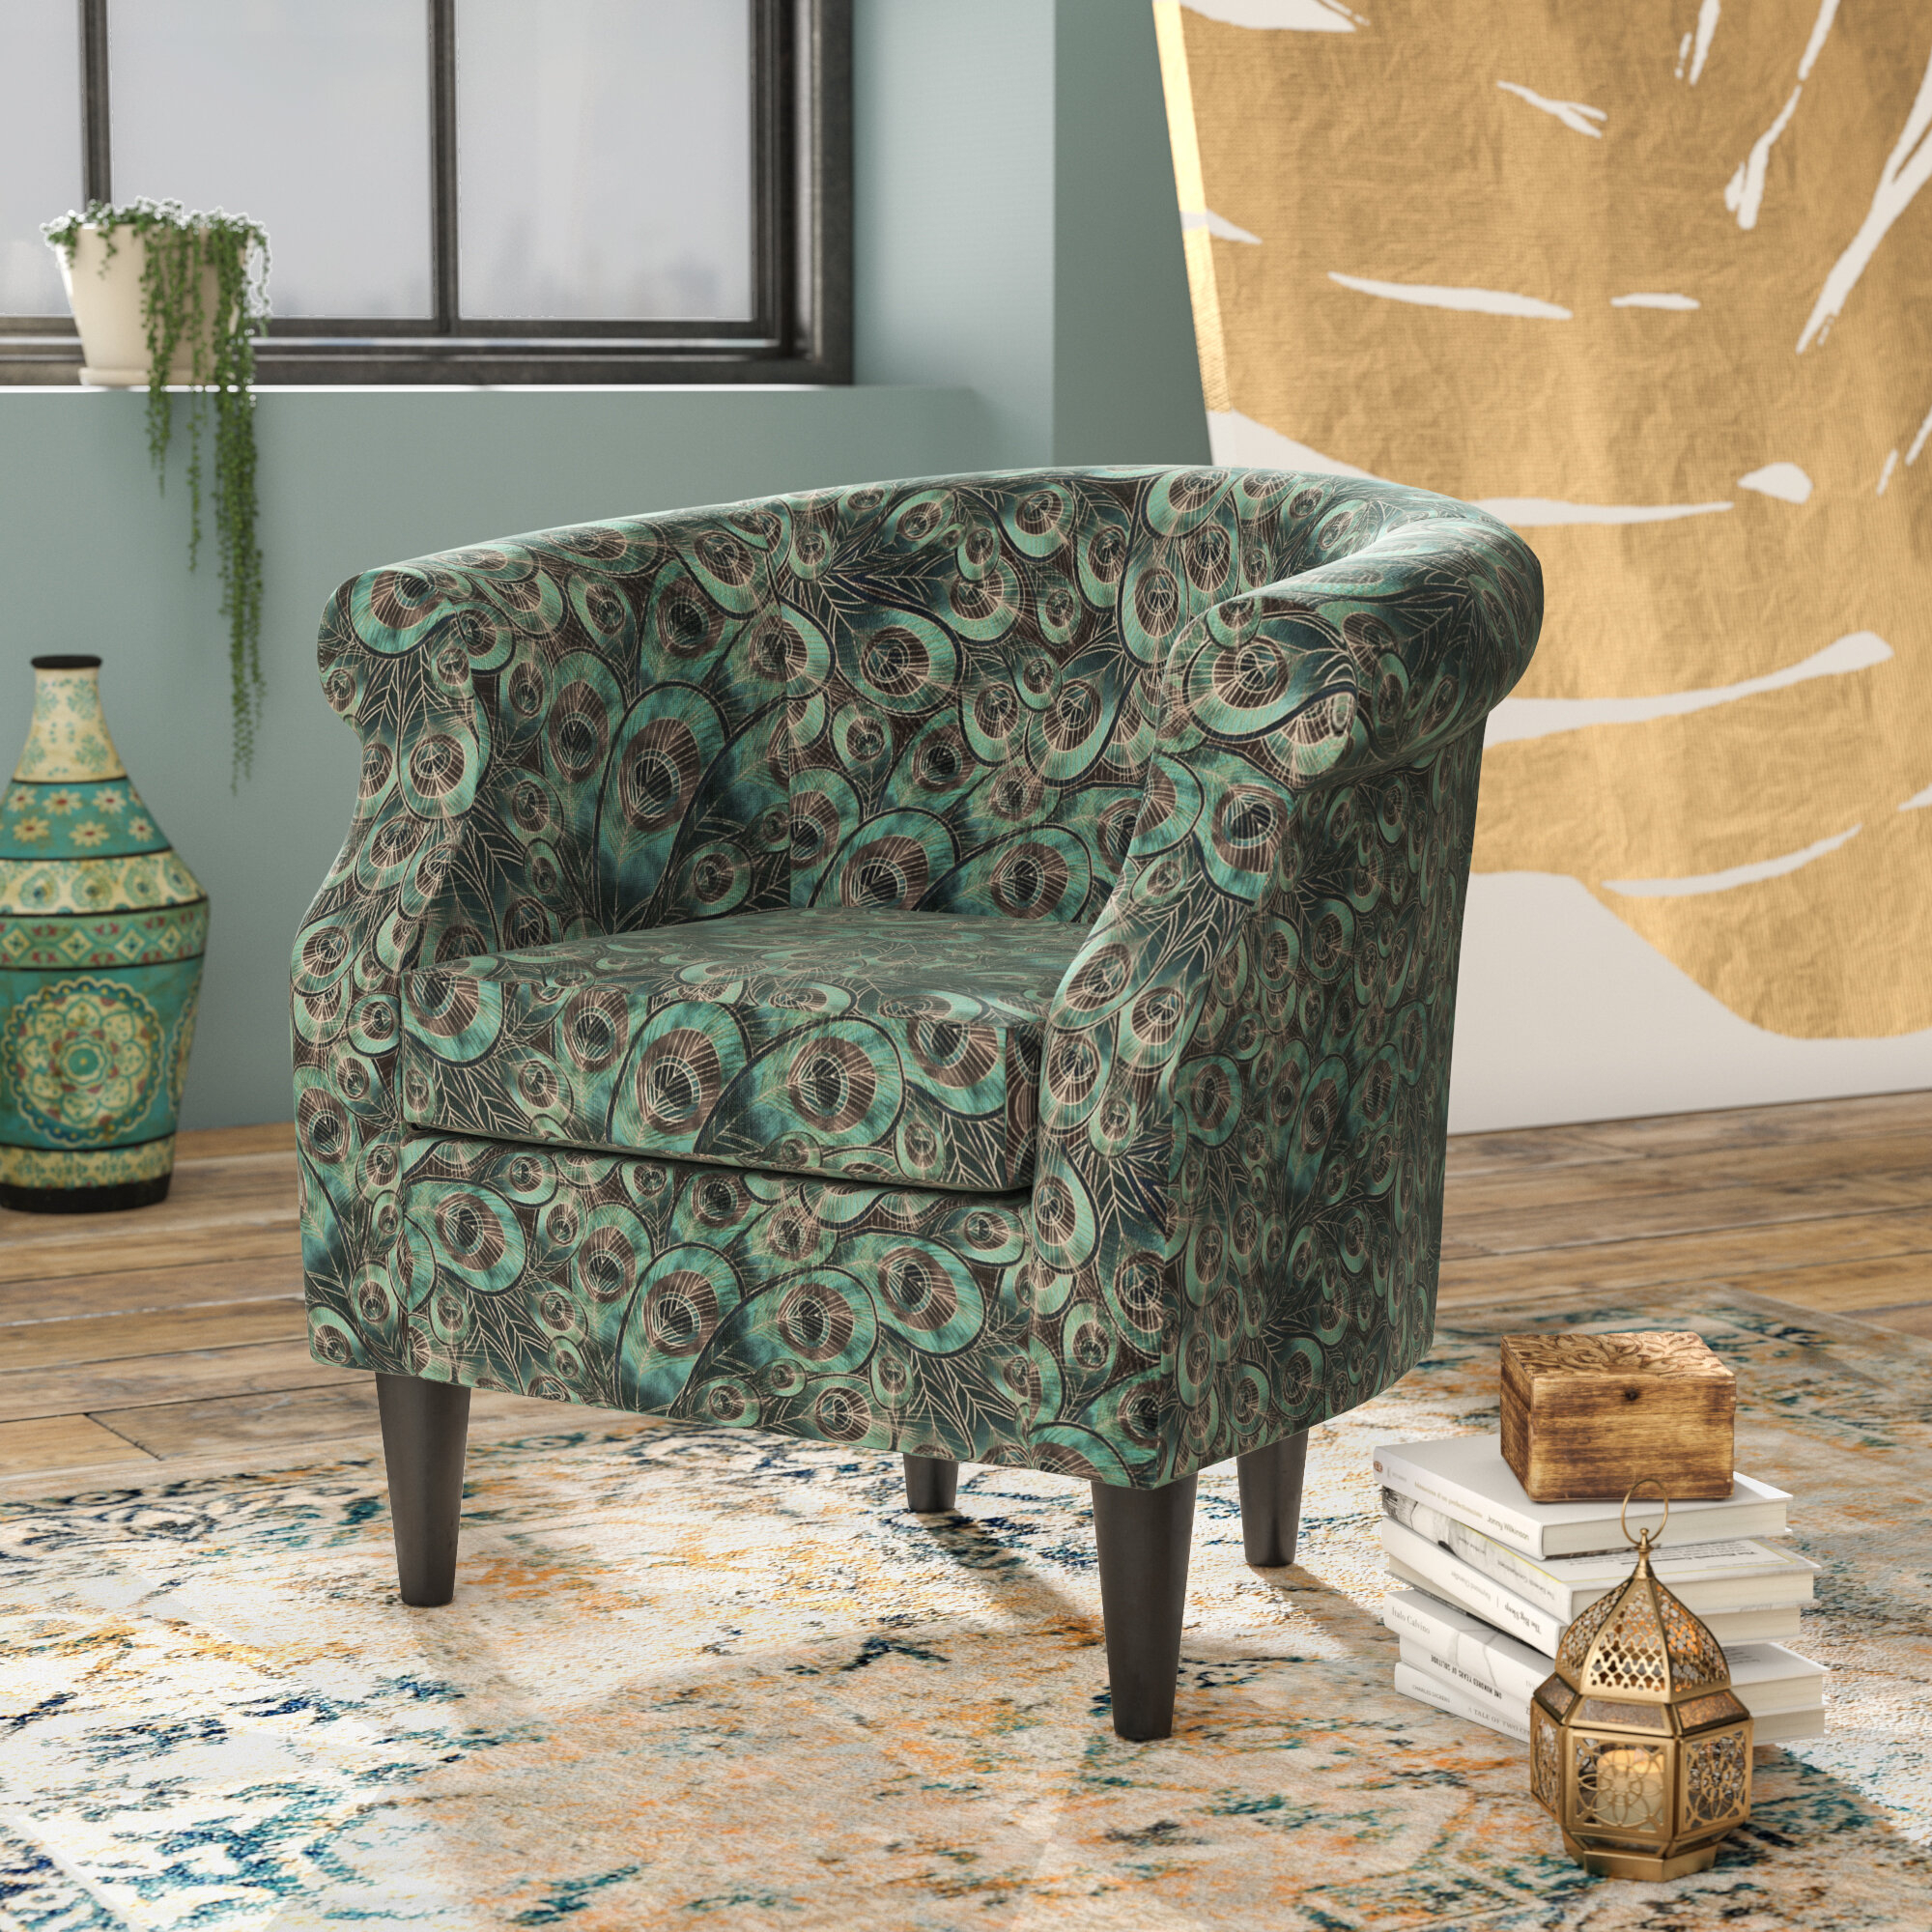 Ronda Barrel Chair With Regard To Ronda Barrel Chairs (View 5 of 15)